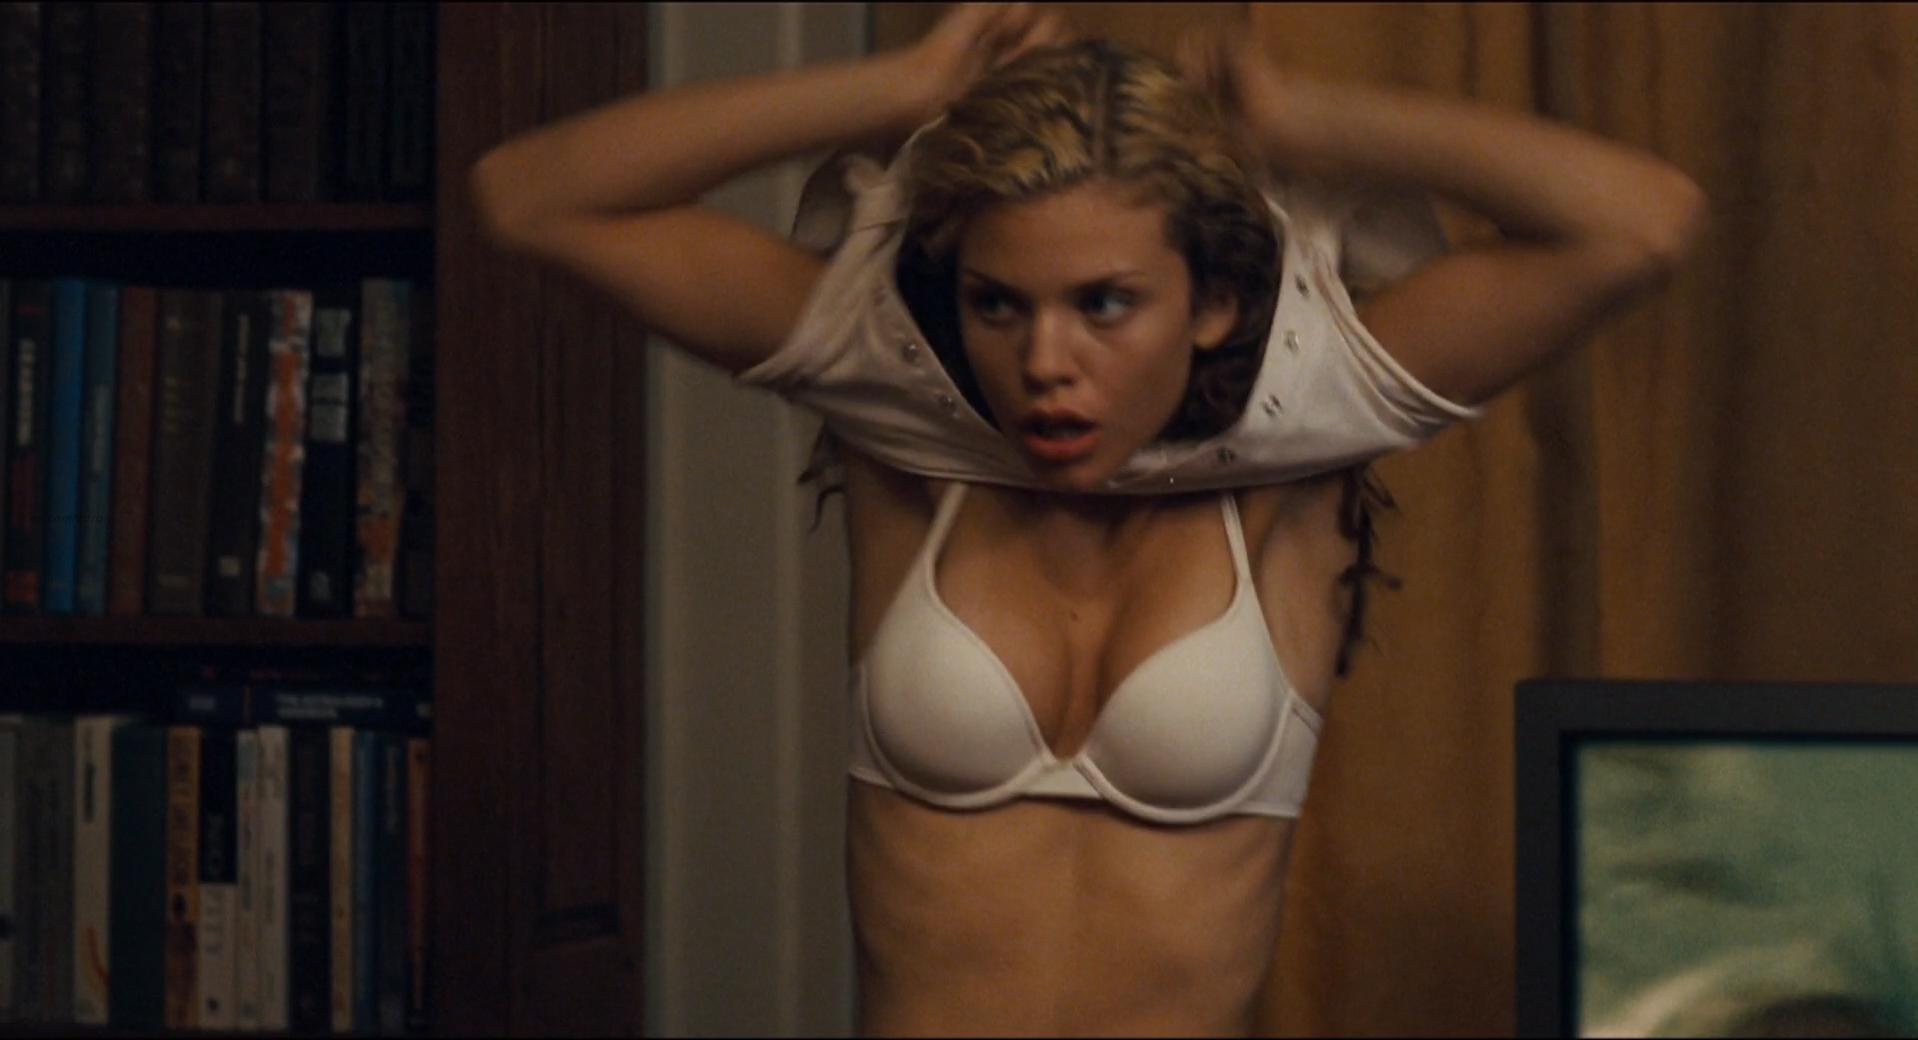 Annalynne mccord hot nude sex